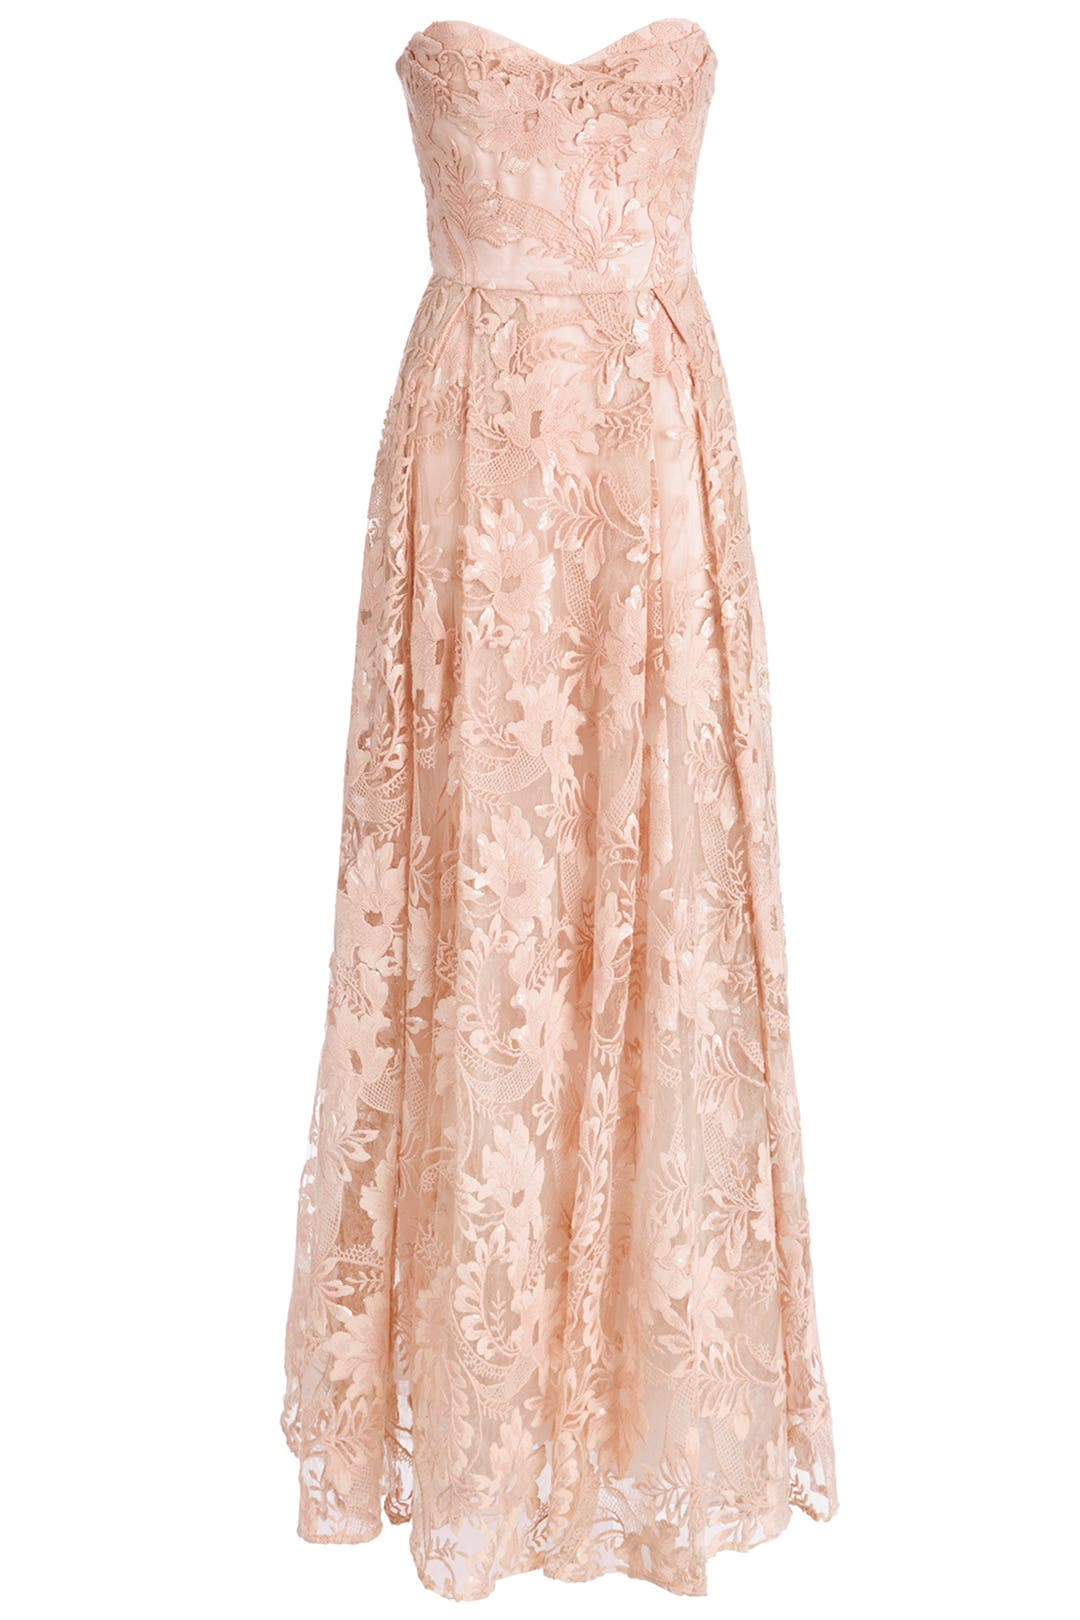 Flora Chiffon Gown by Badgley Mischka for $50 - $70 | Rent the Runway